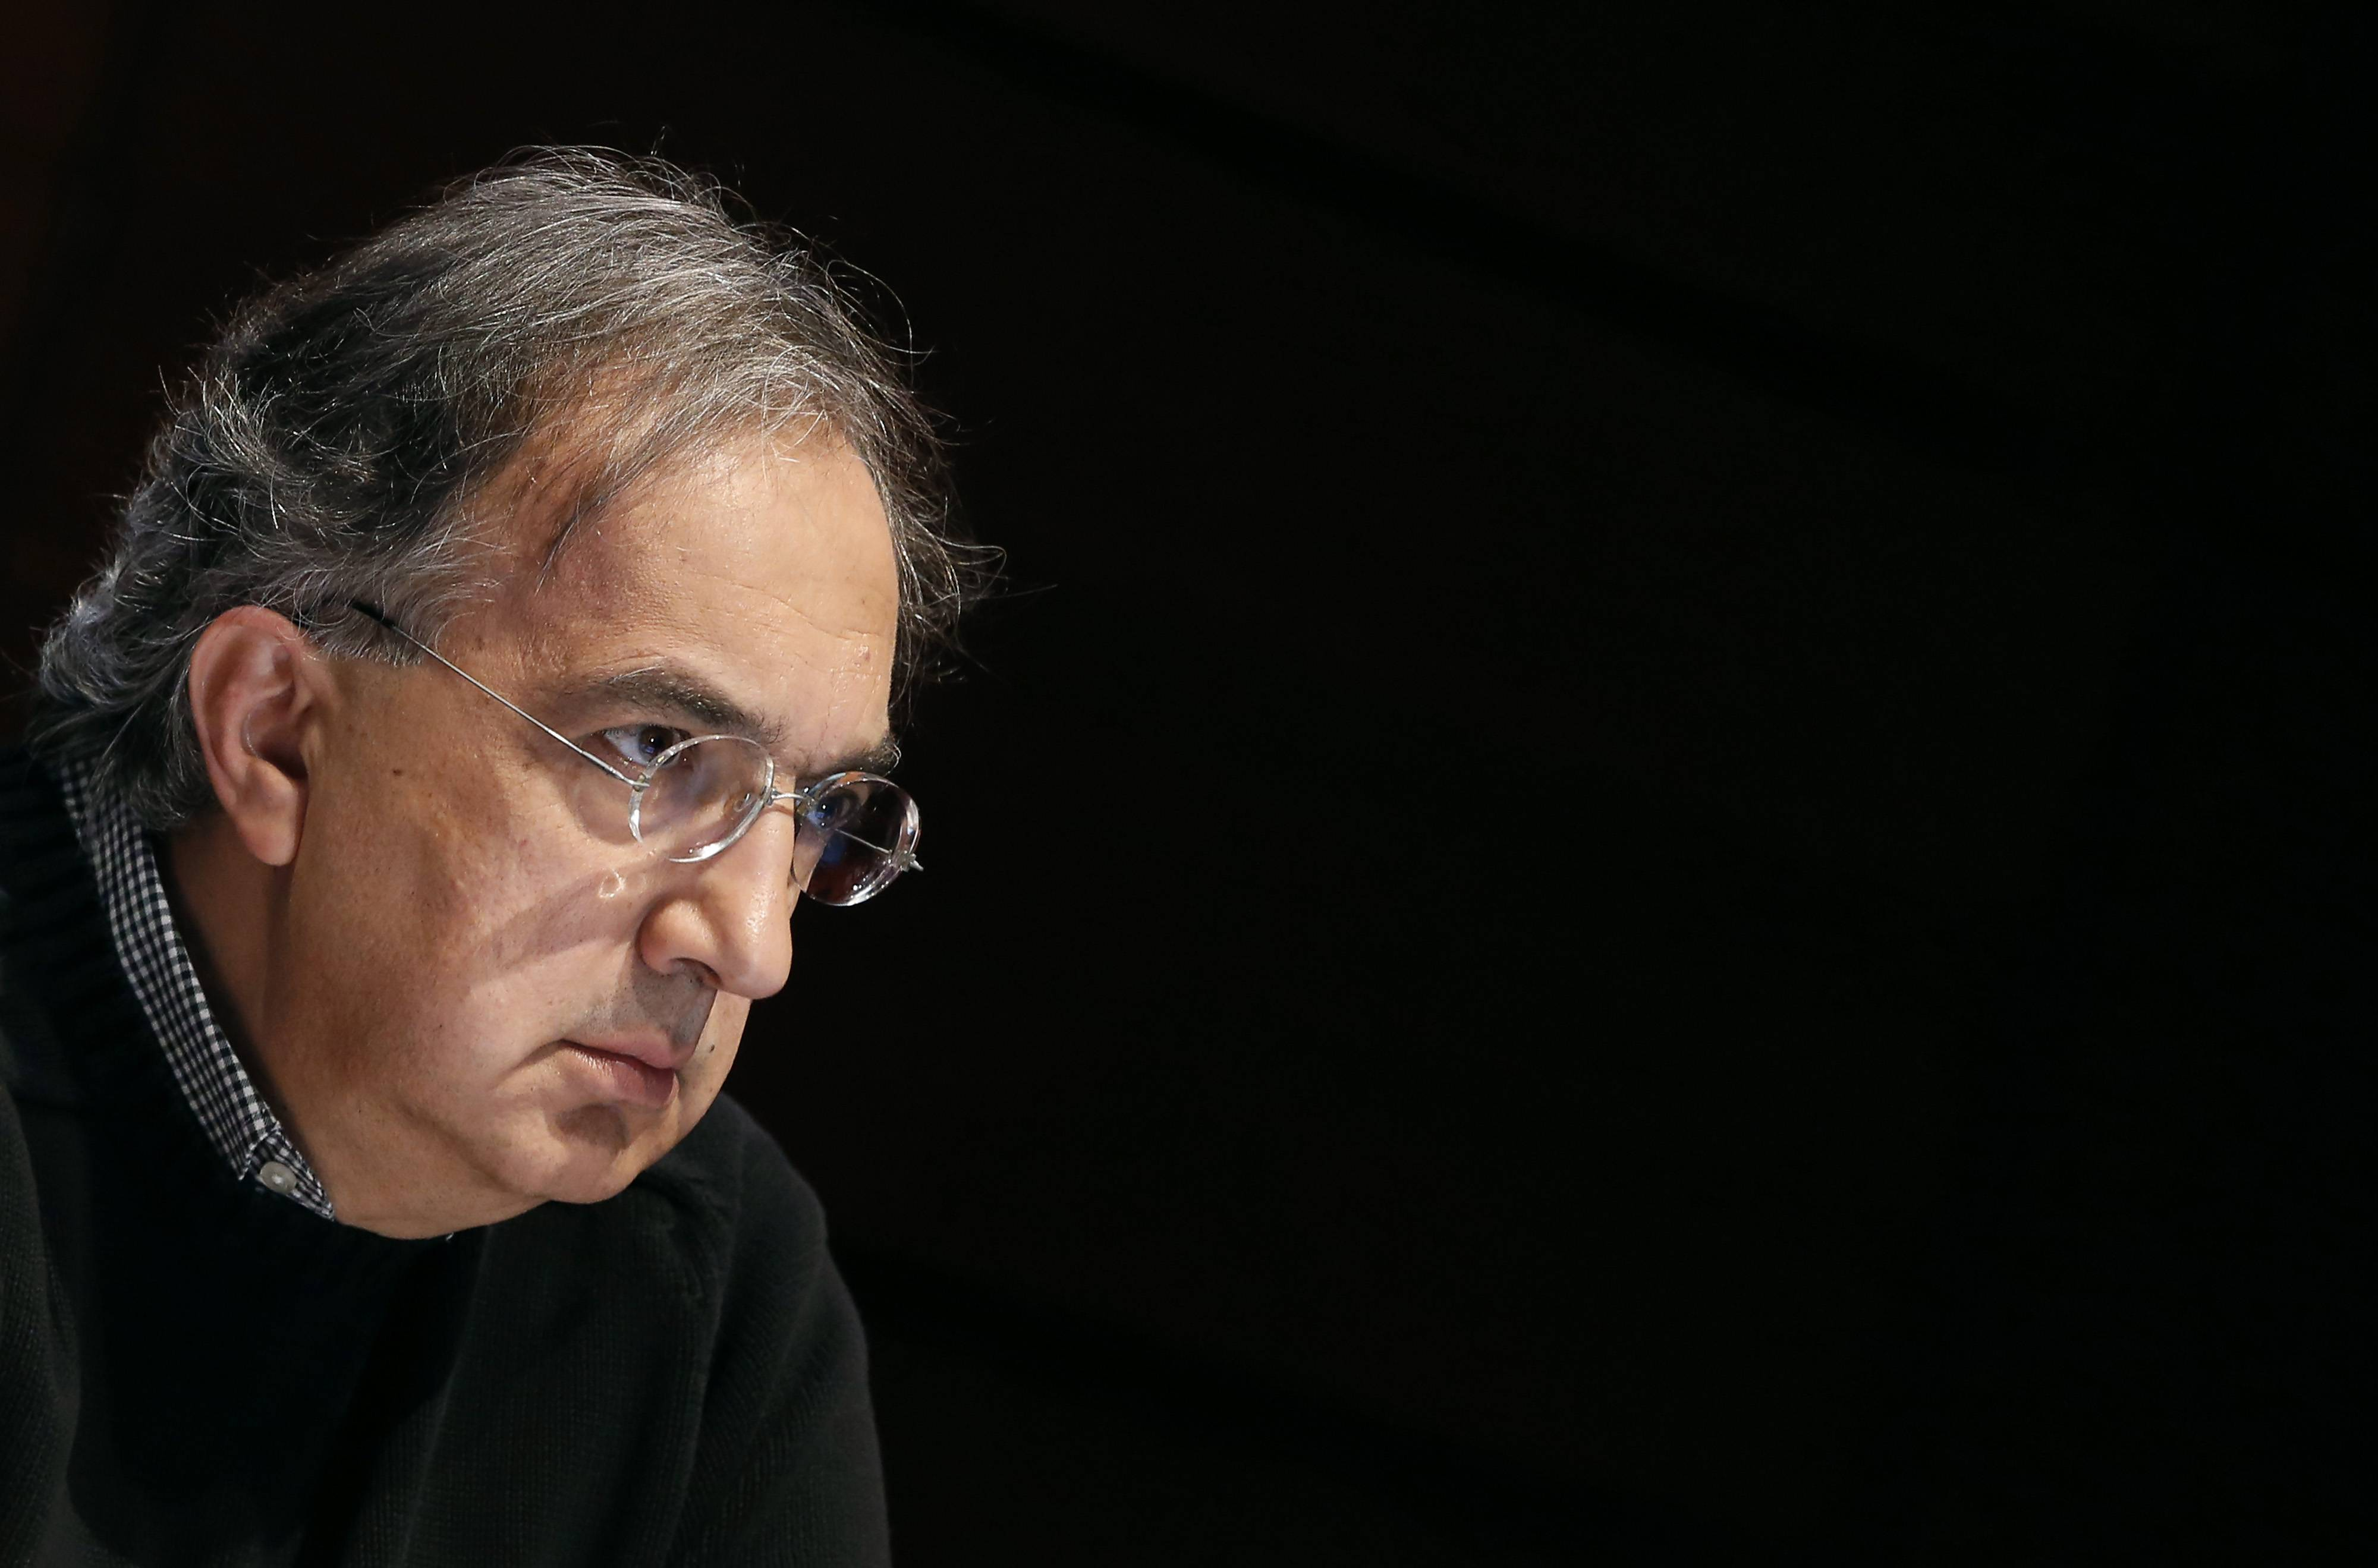 Sergio Marchionne, chief executive officer of Fiat SpA and Chrysler Group LLC, pauses during the company's annual general meeting in Turin, Italy. Fiat shareholders have voted in favor of a merger with Chrysler that has been five years in the works and will shift the 115-year-old carmaker's center of gravity abroad.